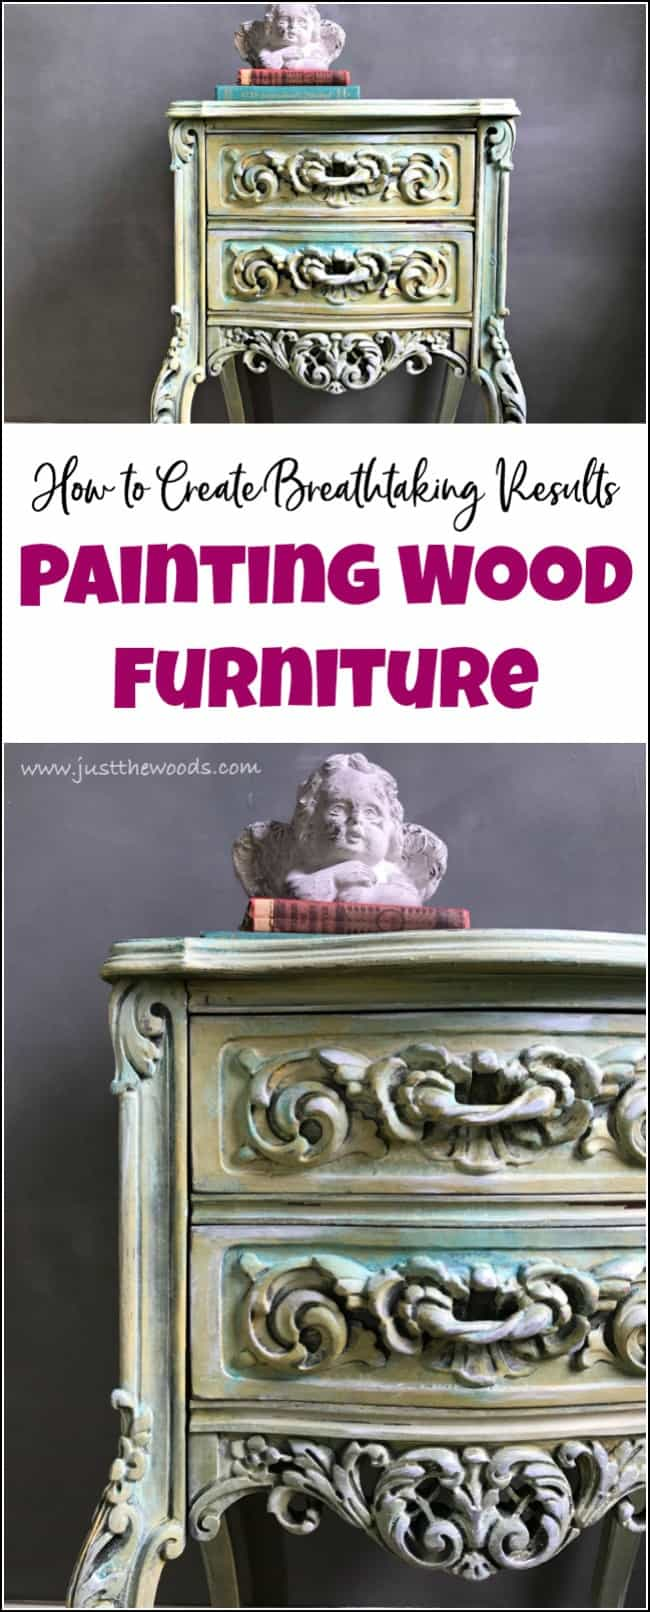 Painting wood furniture can completely transformthe appearance of a piece of furniture. As long as you know how to paint wood furniture the possibilities are endless. See how to transform wooden furniture with the best furniture paint. Layering paint and patina are gorgeous painting wood furniture ideas. #paintedfurniture #paintingwoodfurniture #furniturepaint #howtopaintwoodfurniture